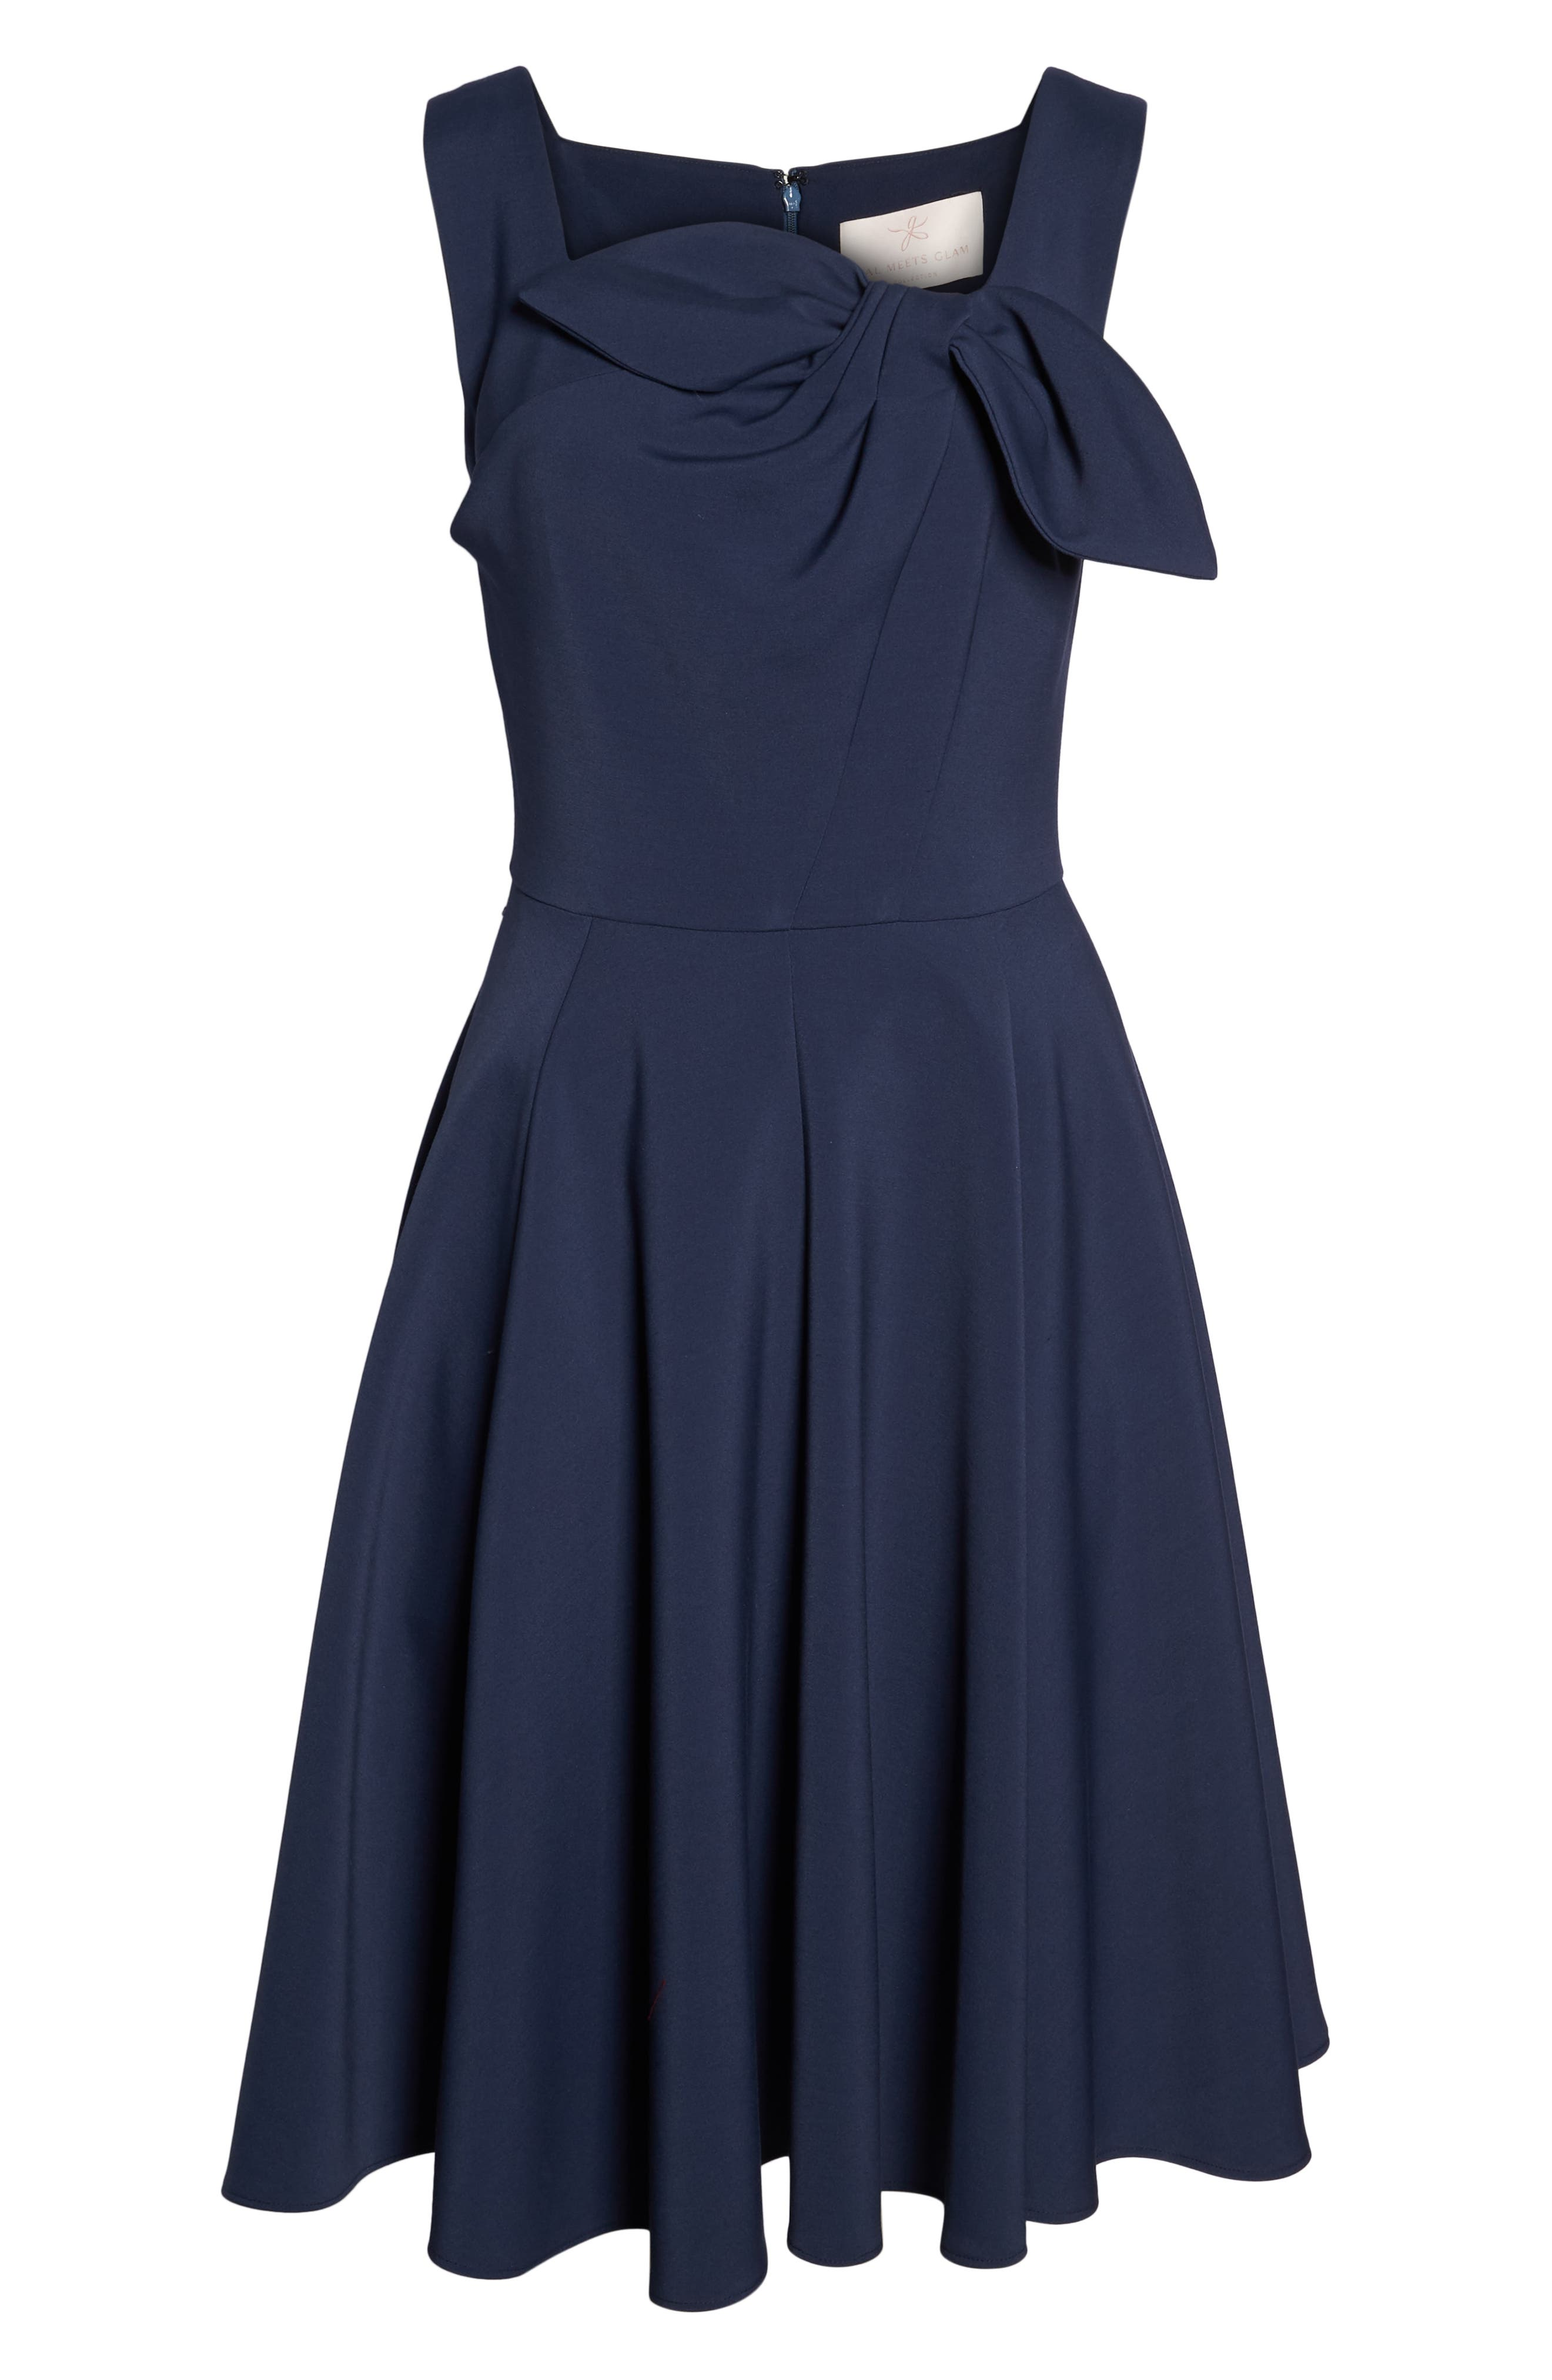 Zoe Bow Neckline Fit & Flare Dress,                             Alternate thumbnail 7, color,                             MIDNIGHT BLUE